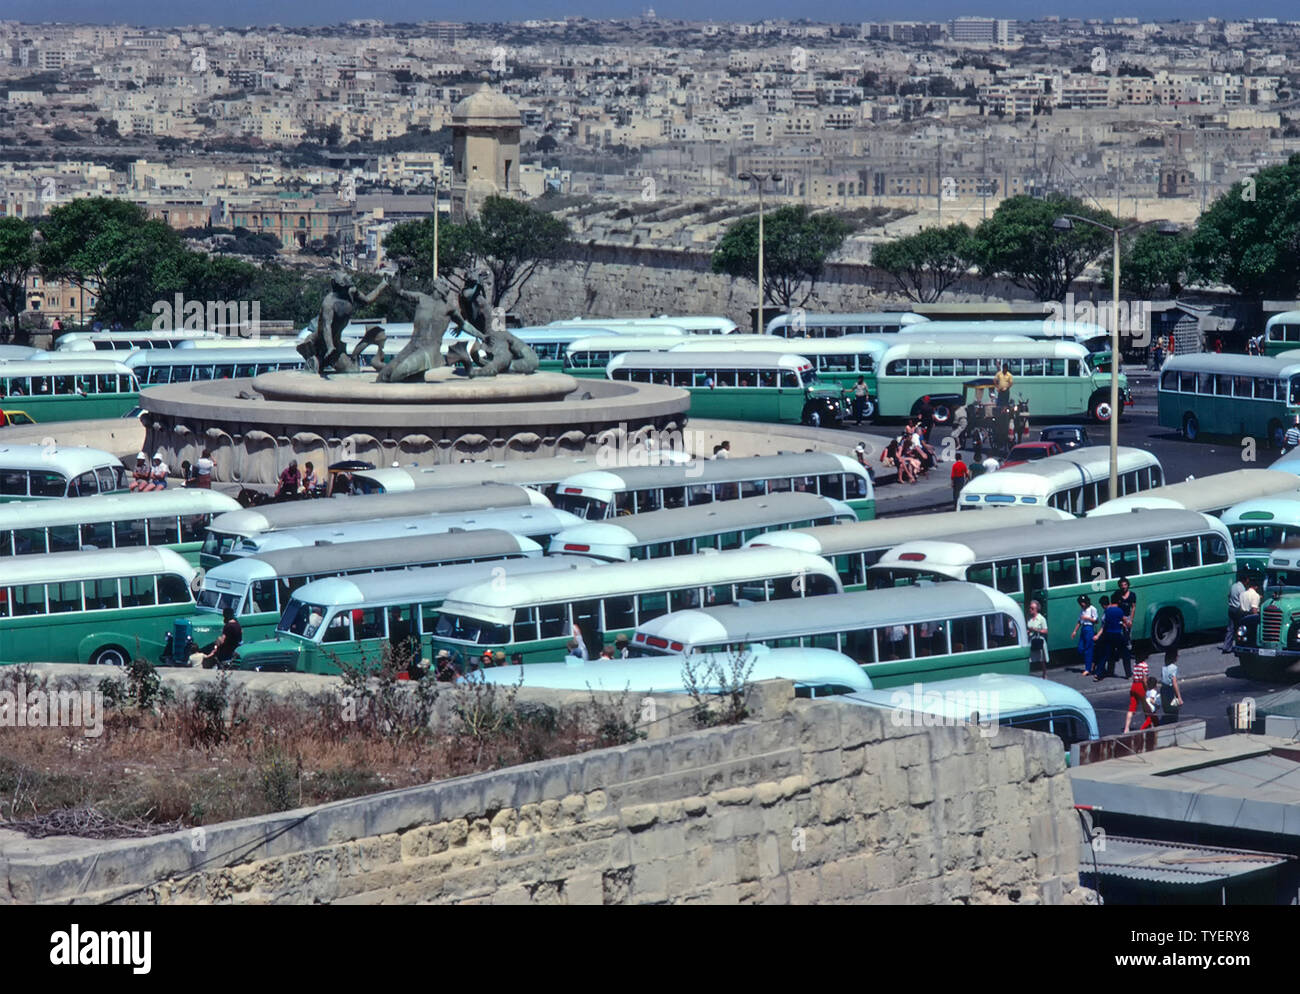 Historical archive image main bus terminus in Valletta buses painted green 1975 - 1995 parked around much altered three bronze Tritons statues Malta - Stock Image